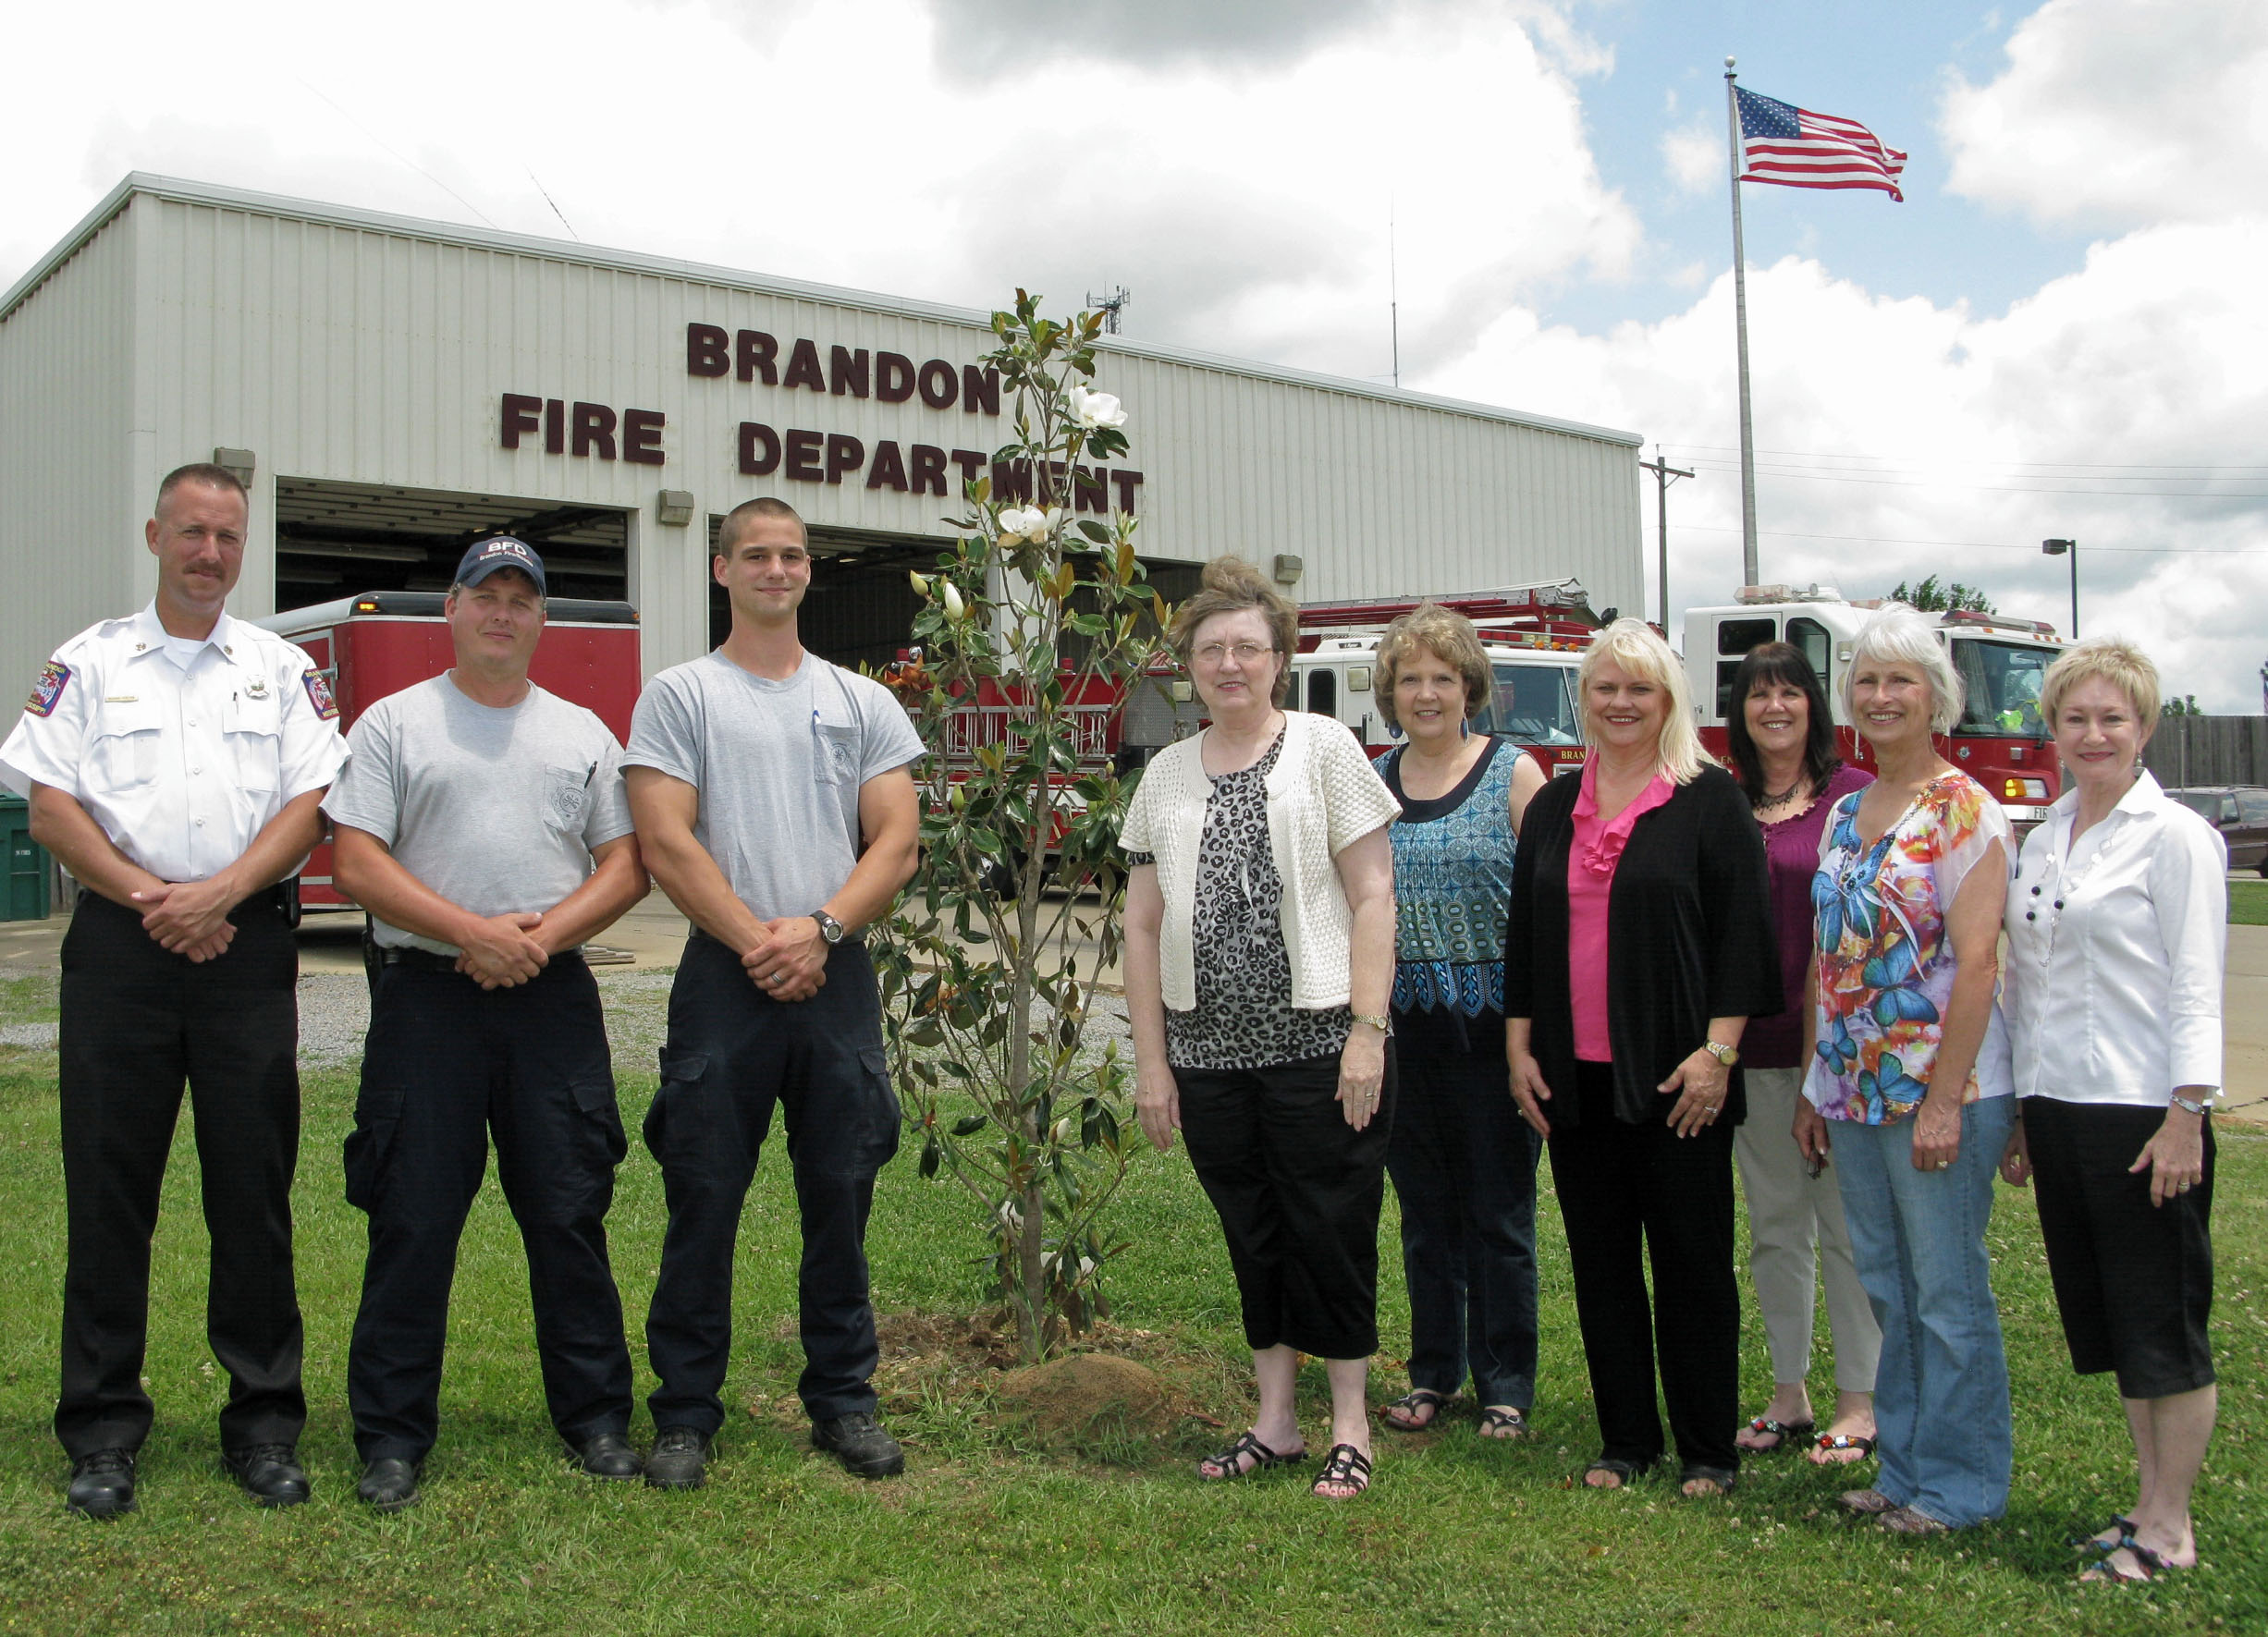 BRANDON GARDEN CLUB DONATESMEMORIALTREEFOR ARBOR DAY  Brandon Garden Club (BGC), The Garden Clubs of Mississippi, Inc., planted a Little Gem Magnoliatreeat Brandon Fire Station #1 on Marquette Road for Arbor Day. Arbor Day is a nationally-celebrated observance that encouragestreeplanting and care. Thetreewas planted in honor/memory of two Brandon firefighters, Ochel Davidson and Trent Mangum, both of whom lost their battles with cancer. They were both former students of Brenda Emmons, the Arbor Day Project Chairman (not pictured). Pictured (l to r): Assistant Fire Chief Richard Fortune, Lt. Shane Jennings, Firefighter Don Fortin, BGC President Dixie Vance, Suzanne Ross, Deena Moore, Delena Hamel, May Hall, and Charla Jordan.